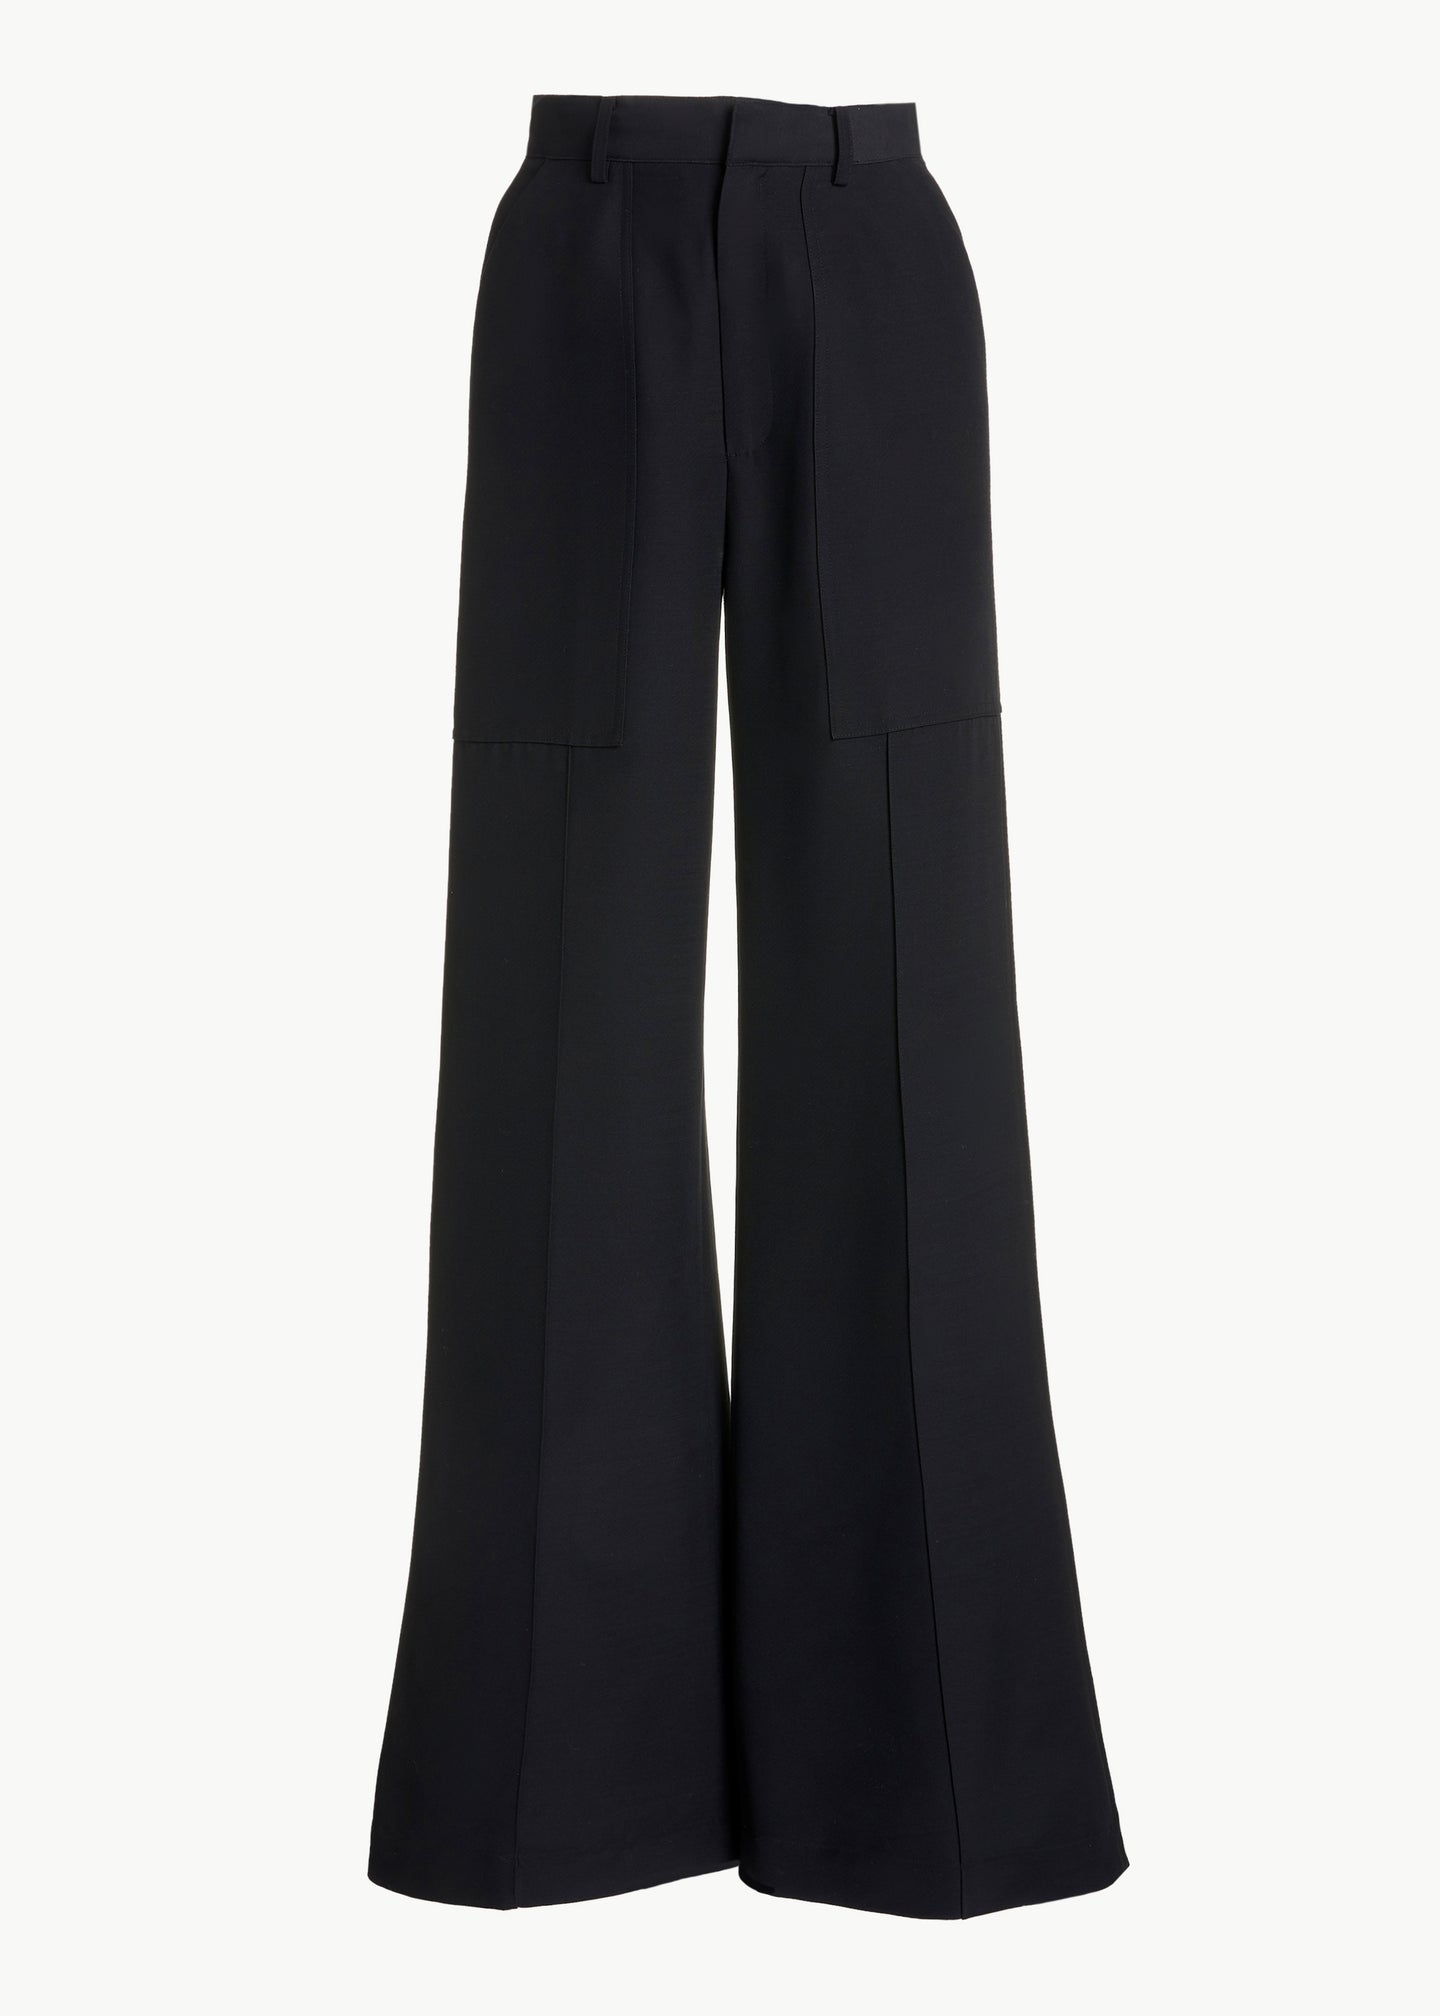 Patch Pocket Pant in Viscose Wool - Black - CO